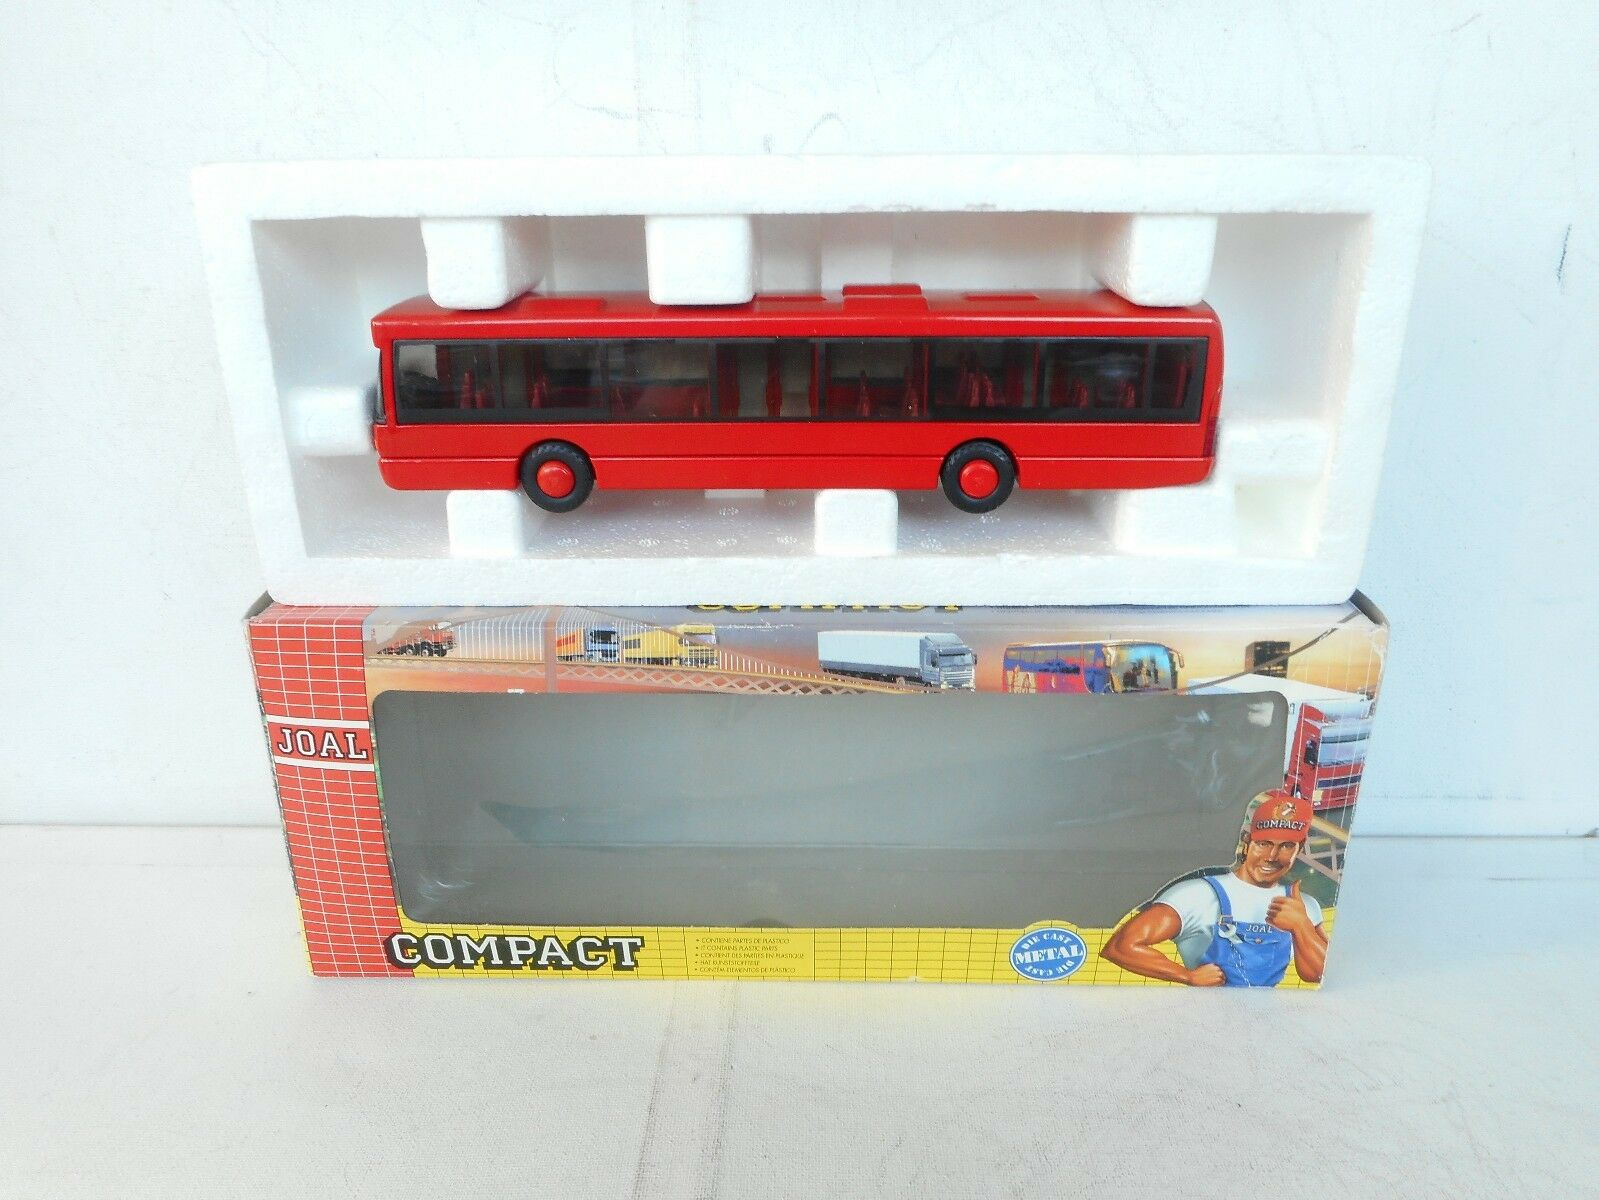 JOAL Compact Ref 155 SCANIA OMNICITY Autobus  RED LINE  NM  Boxed 1 50